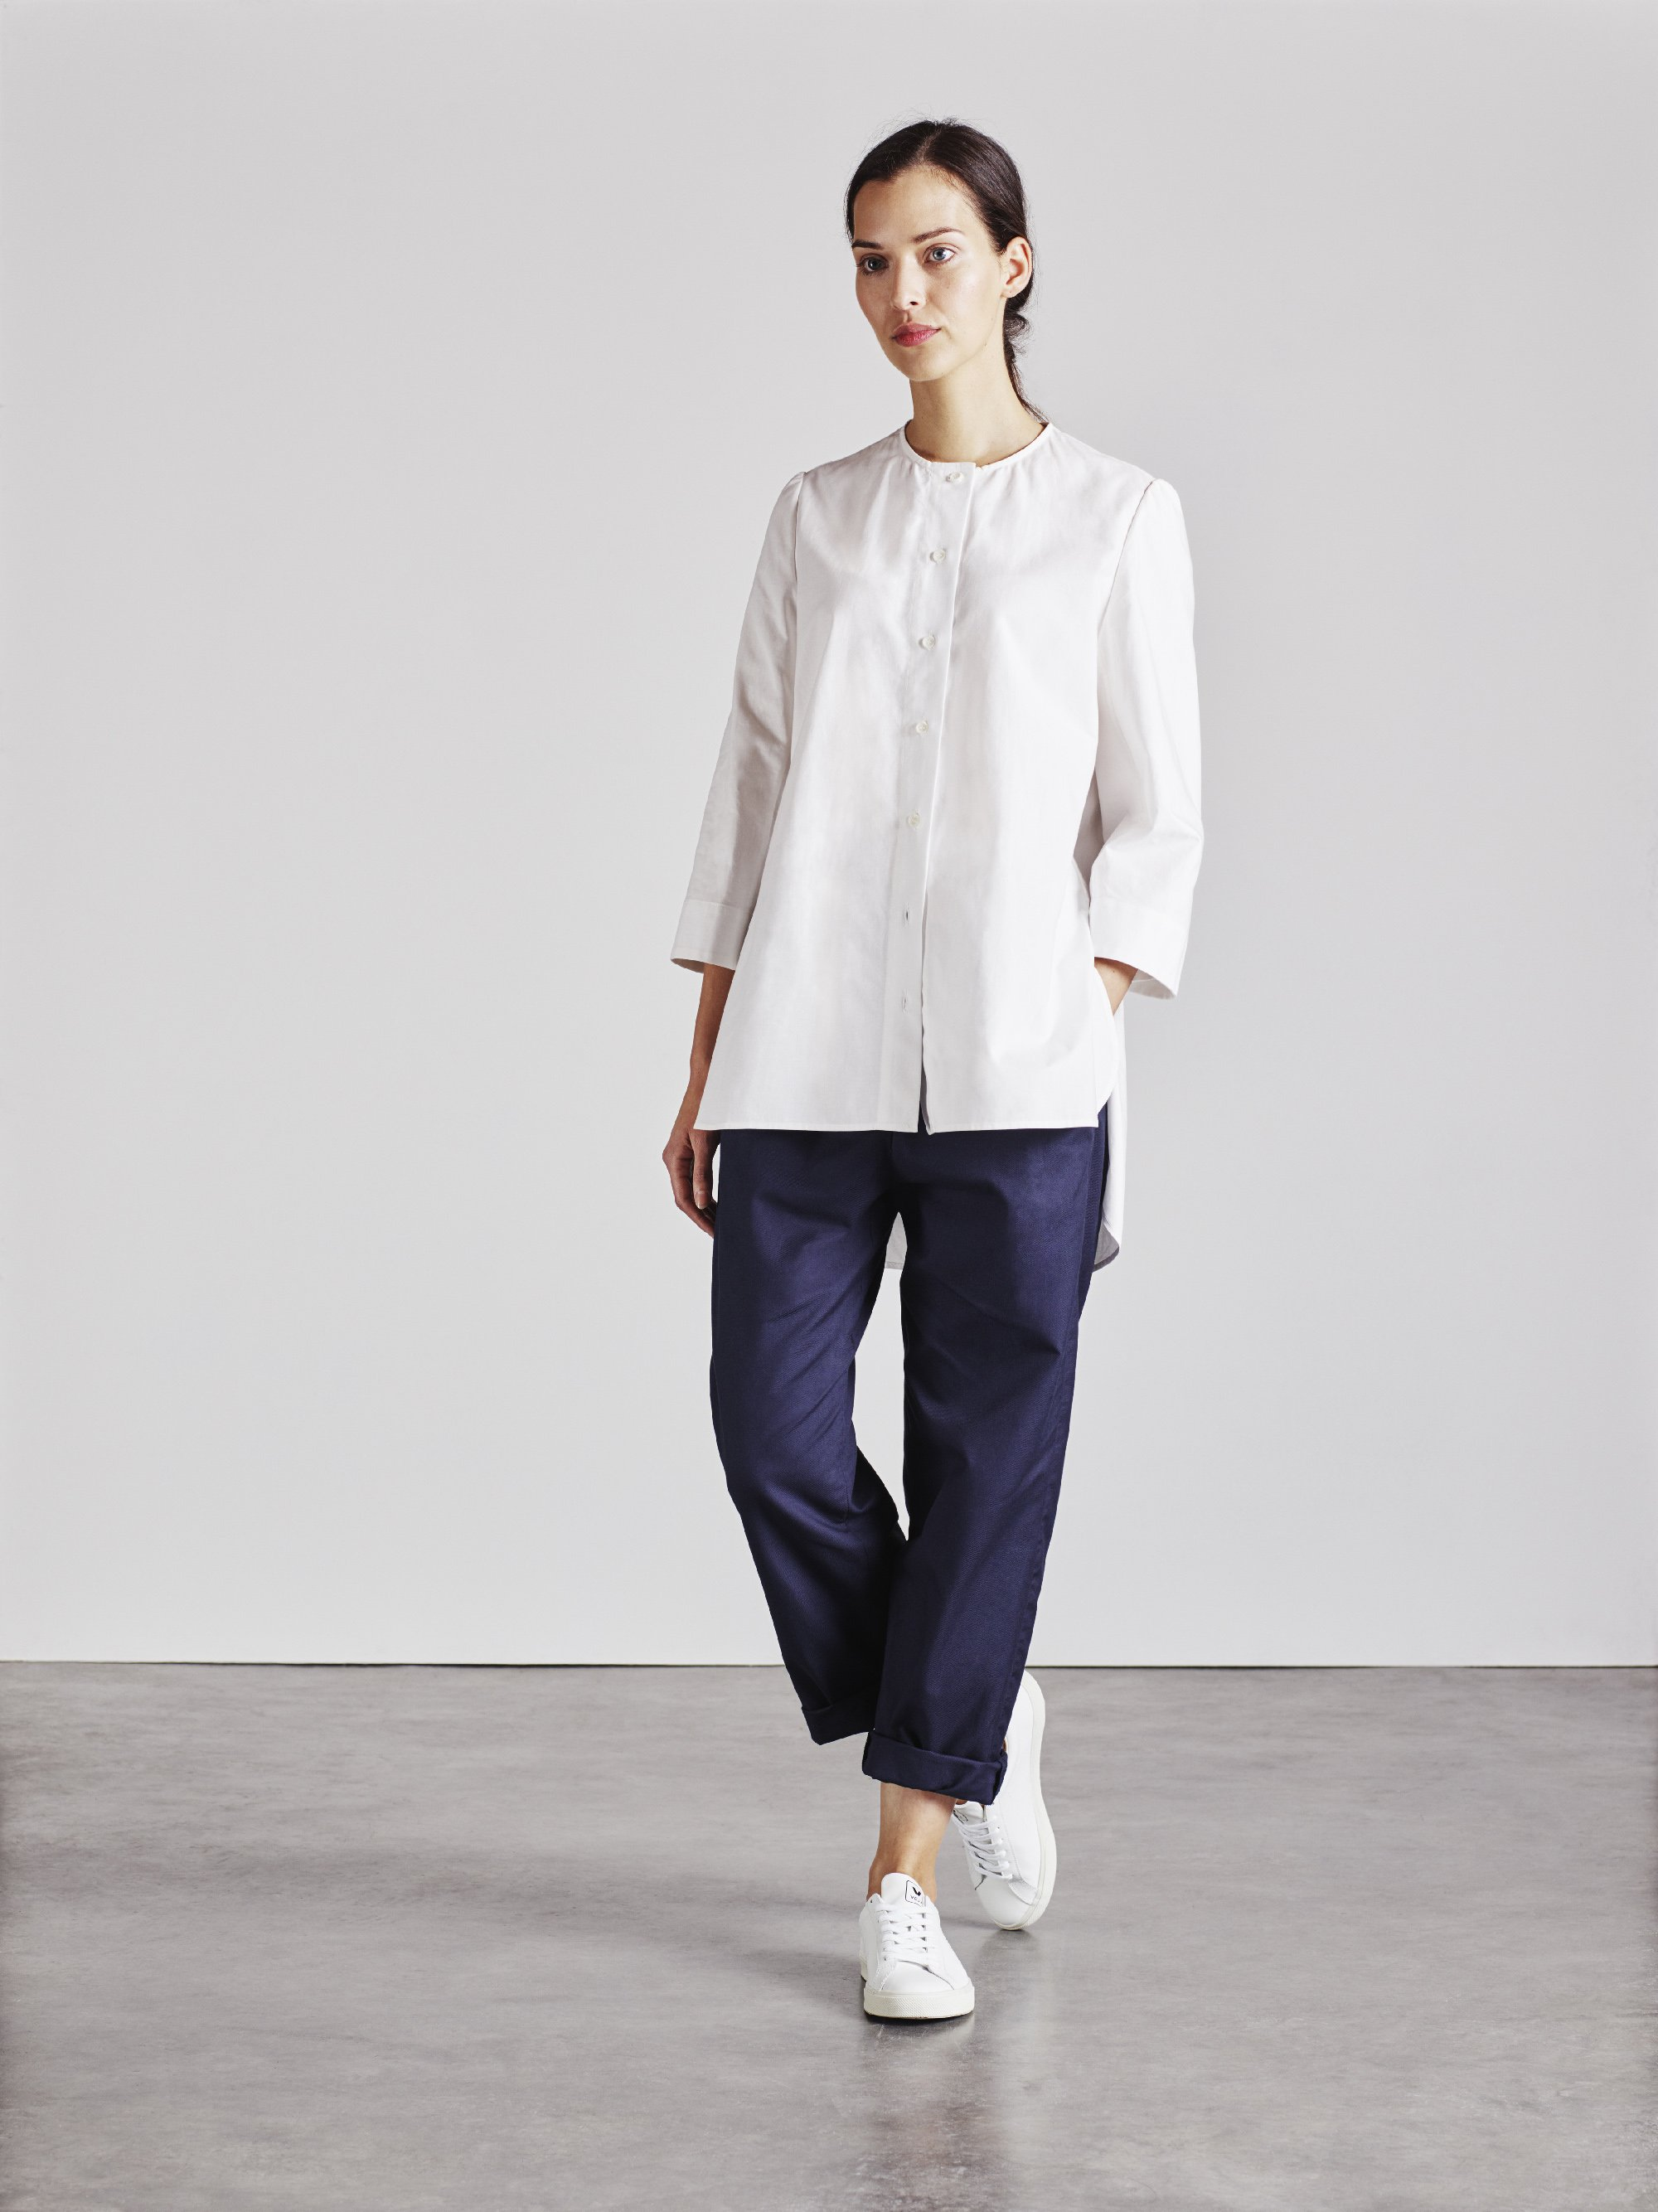 Alice Early Bethan Shirt White